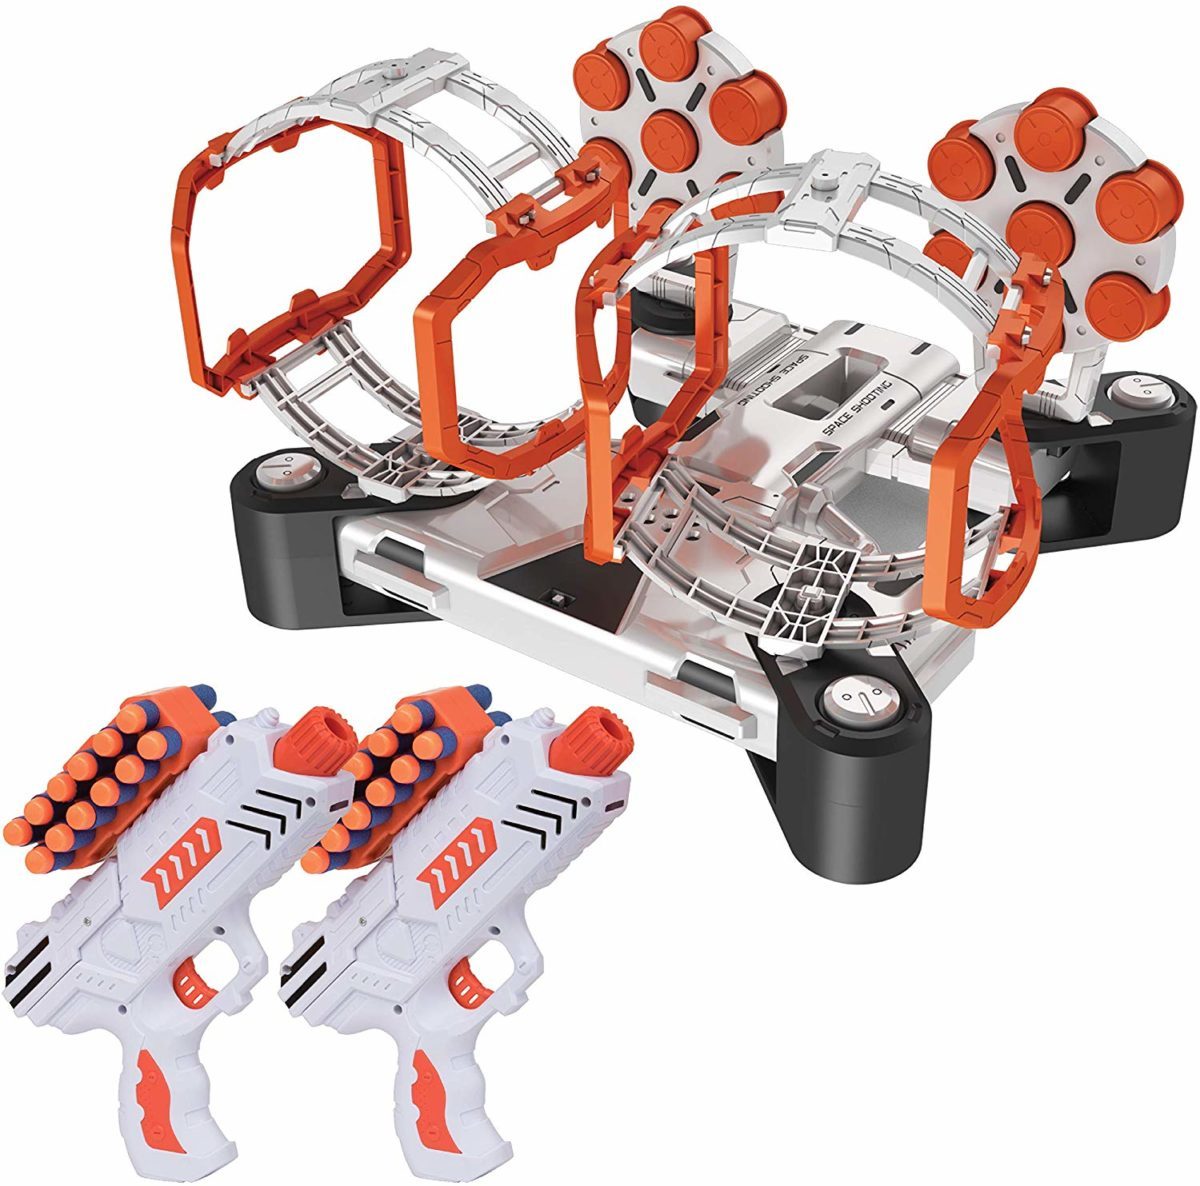 USA Toyz AstroShot Gyro Rotating Target Shooting Games - Top Toys and Gifts for Seven Year Old Boys 1